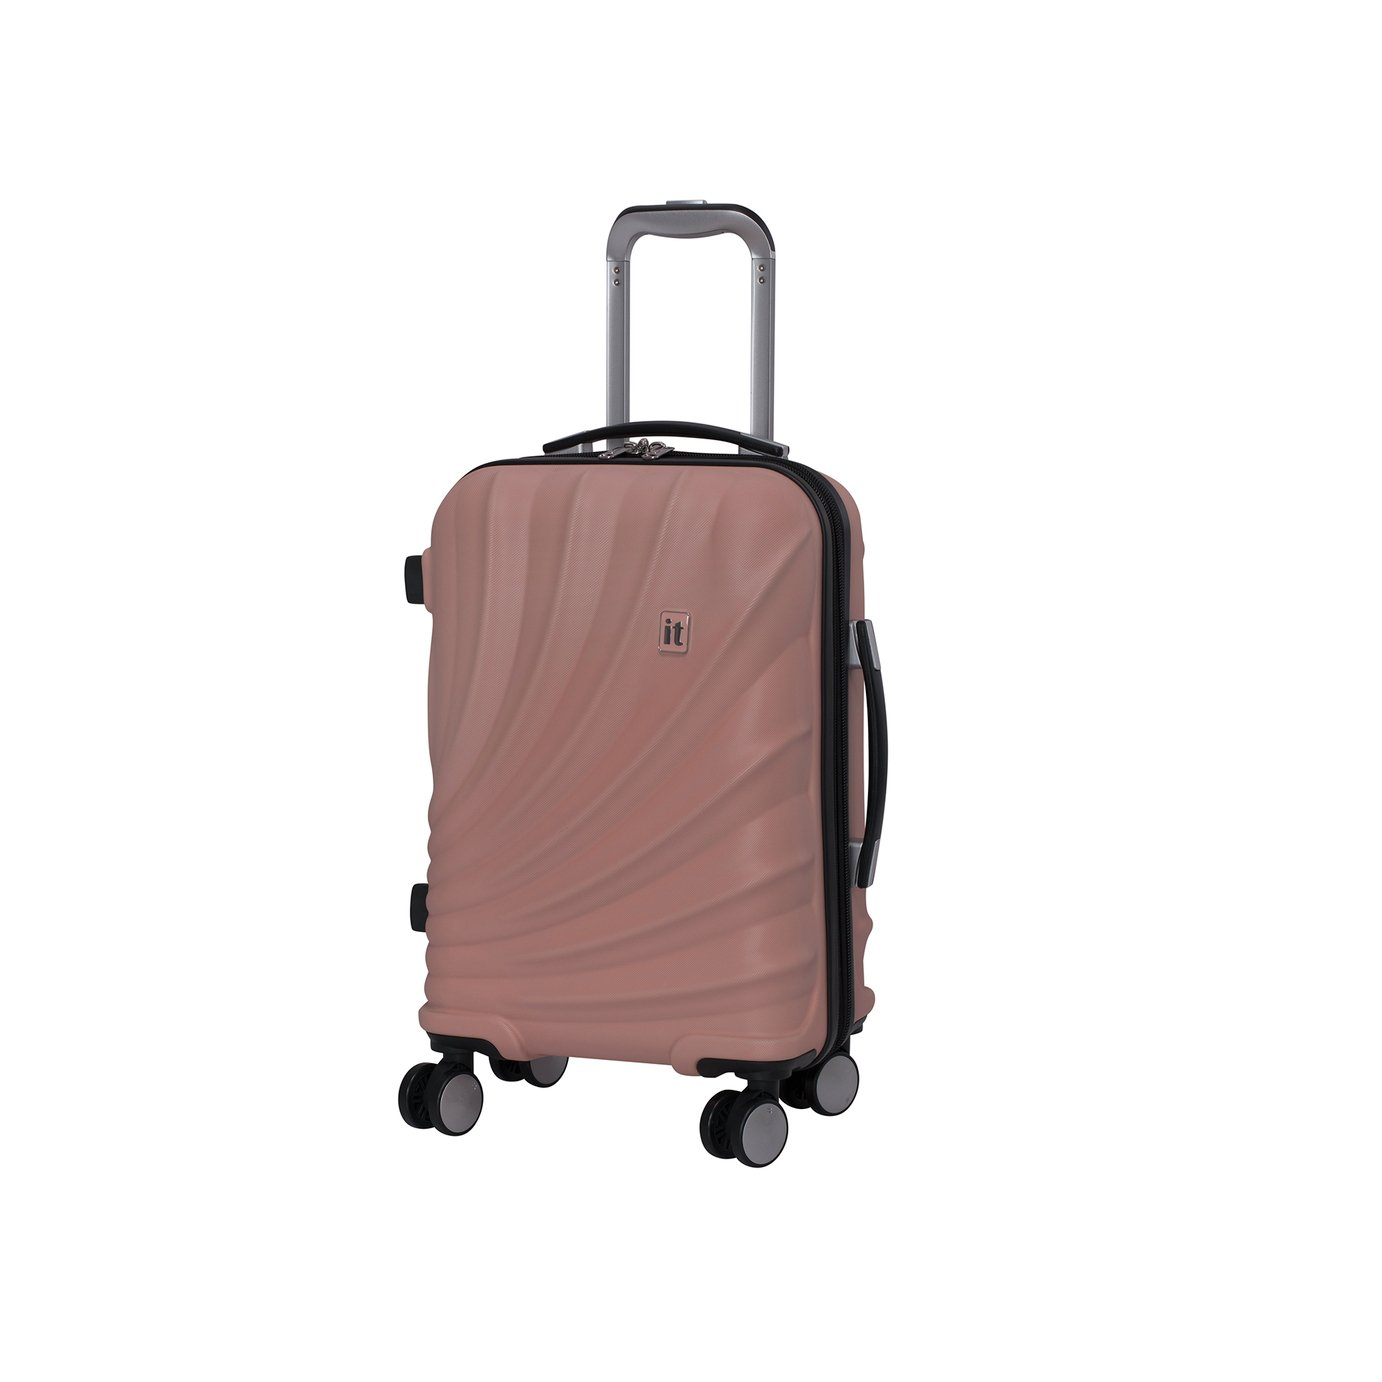 it Luggage Pagoda Expandable 8 Wheel Cabin Suitcase - Pink